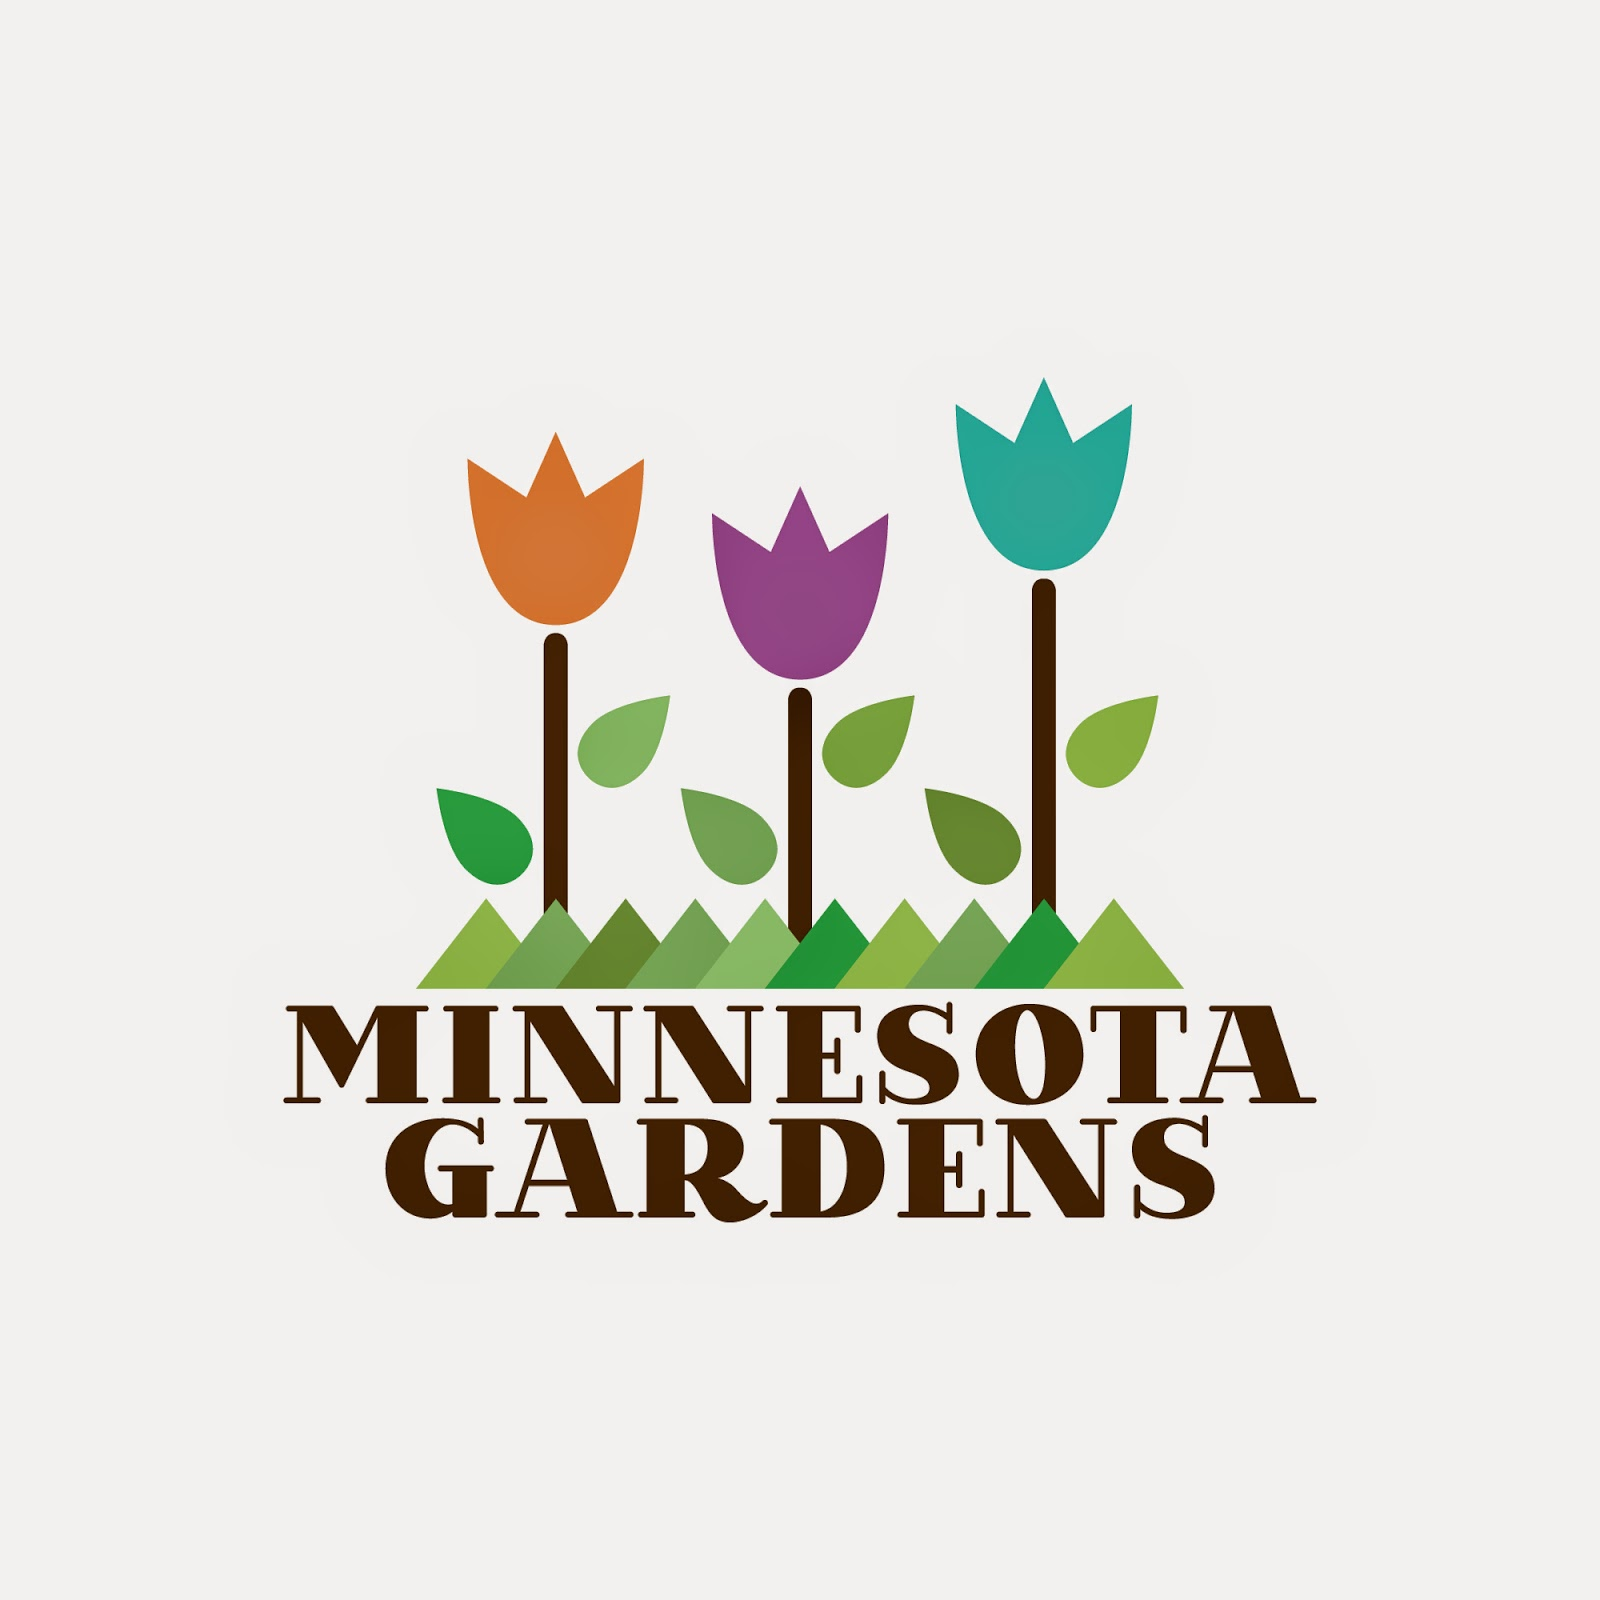 Vegetable Garden Ideas Minnesota Simple Vegetable Garden Ideas For Minnesota  Plans Scmnvj And